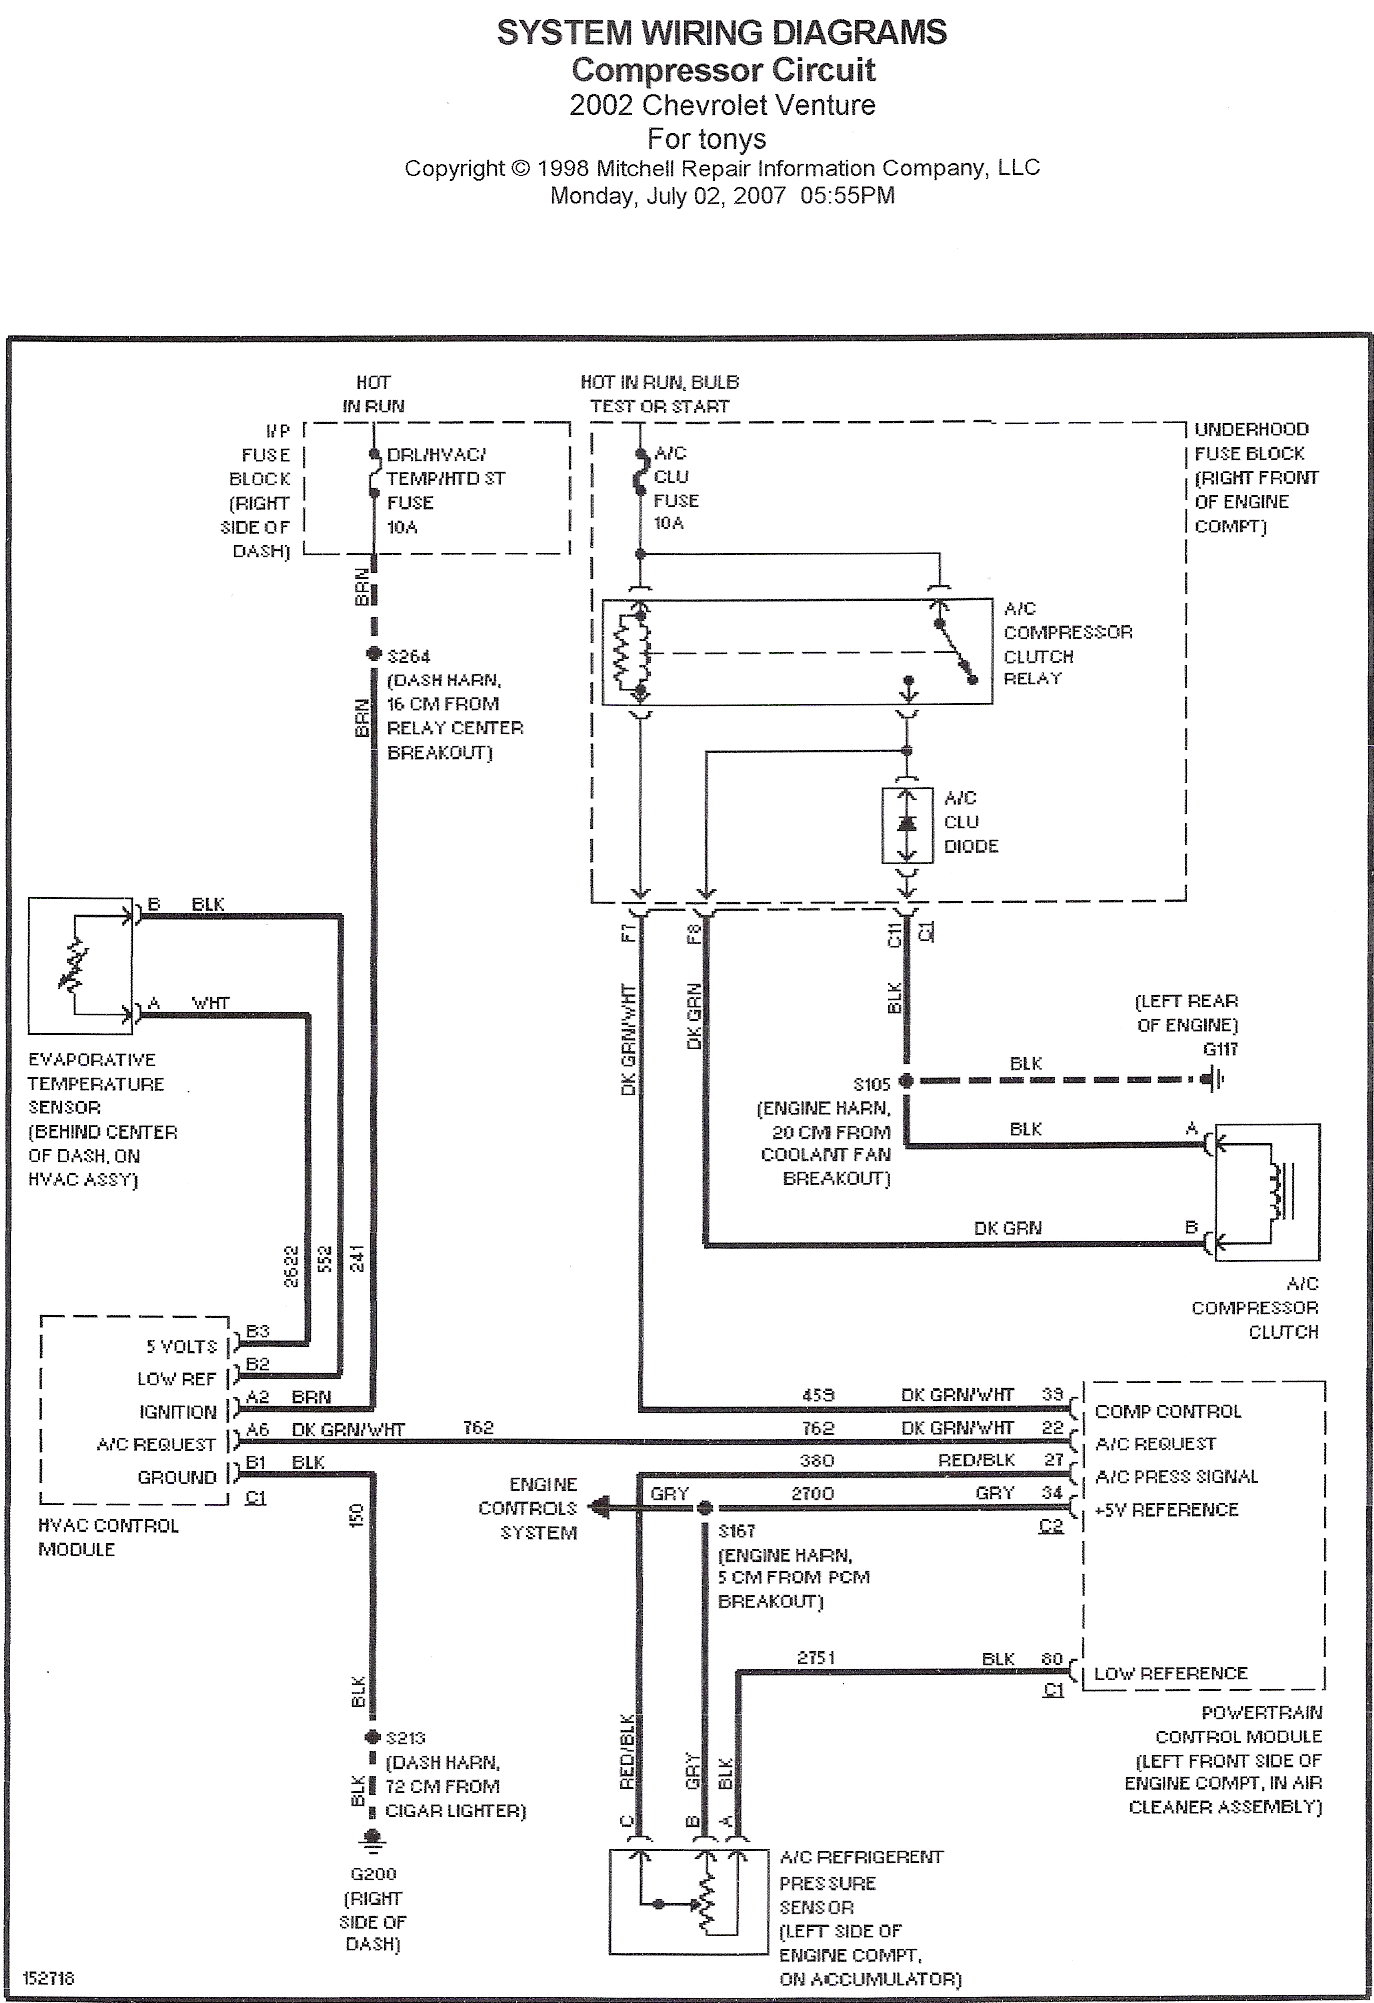 DIAGRAM] 1998 Chevy Venture Wiring Diagram FULL Version HD Quality Wiring  Diagram - CARRYBOYPHIL.K-DANSE.FRK-danse.fr